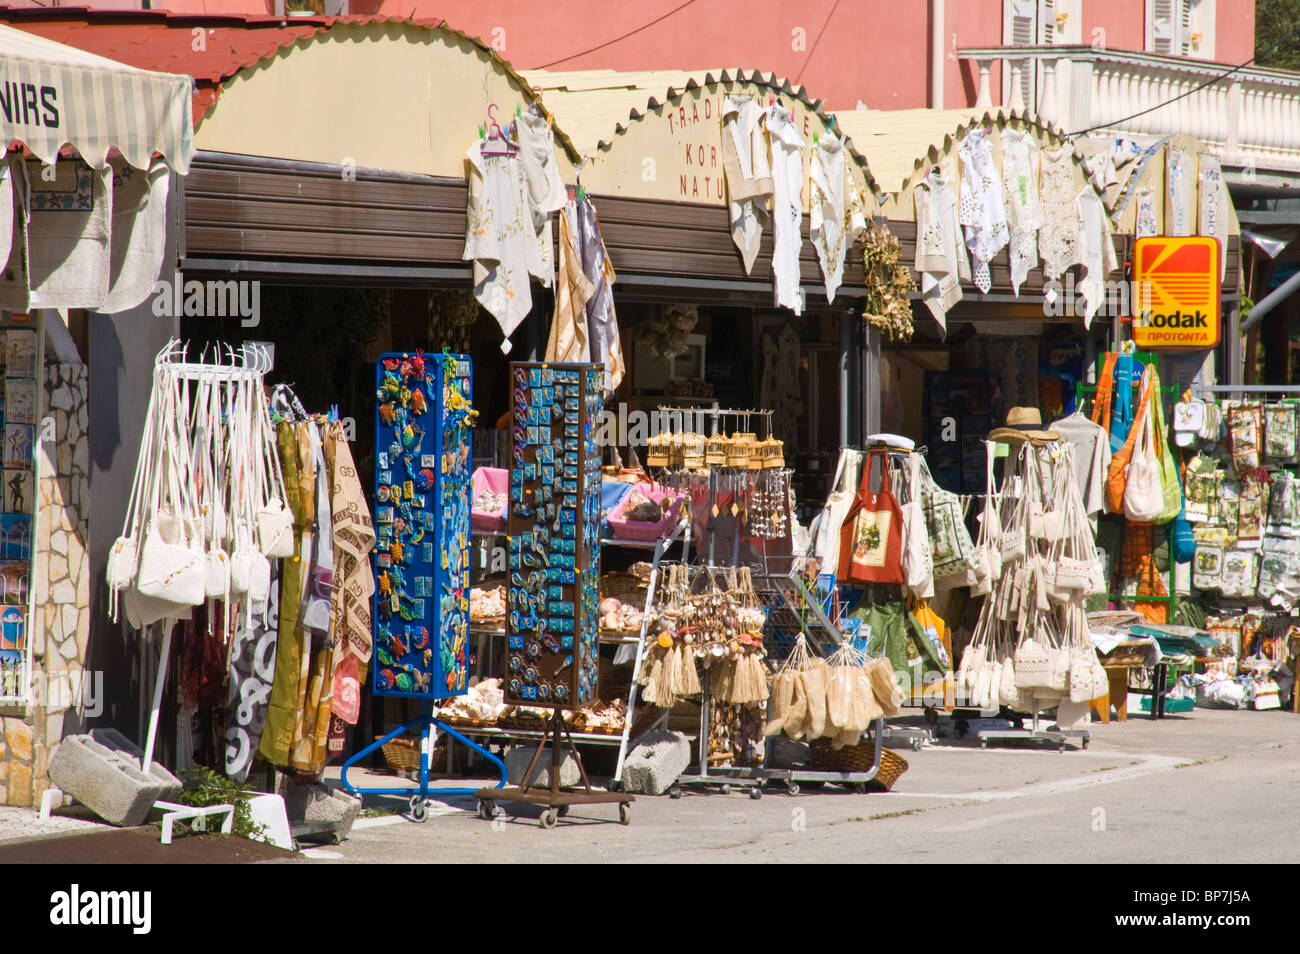 Tourist shops selling souvenirs in the mountain village of Makrades on the Greek Mediterranean island of Corfu Greece - Stock Image